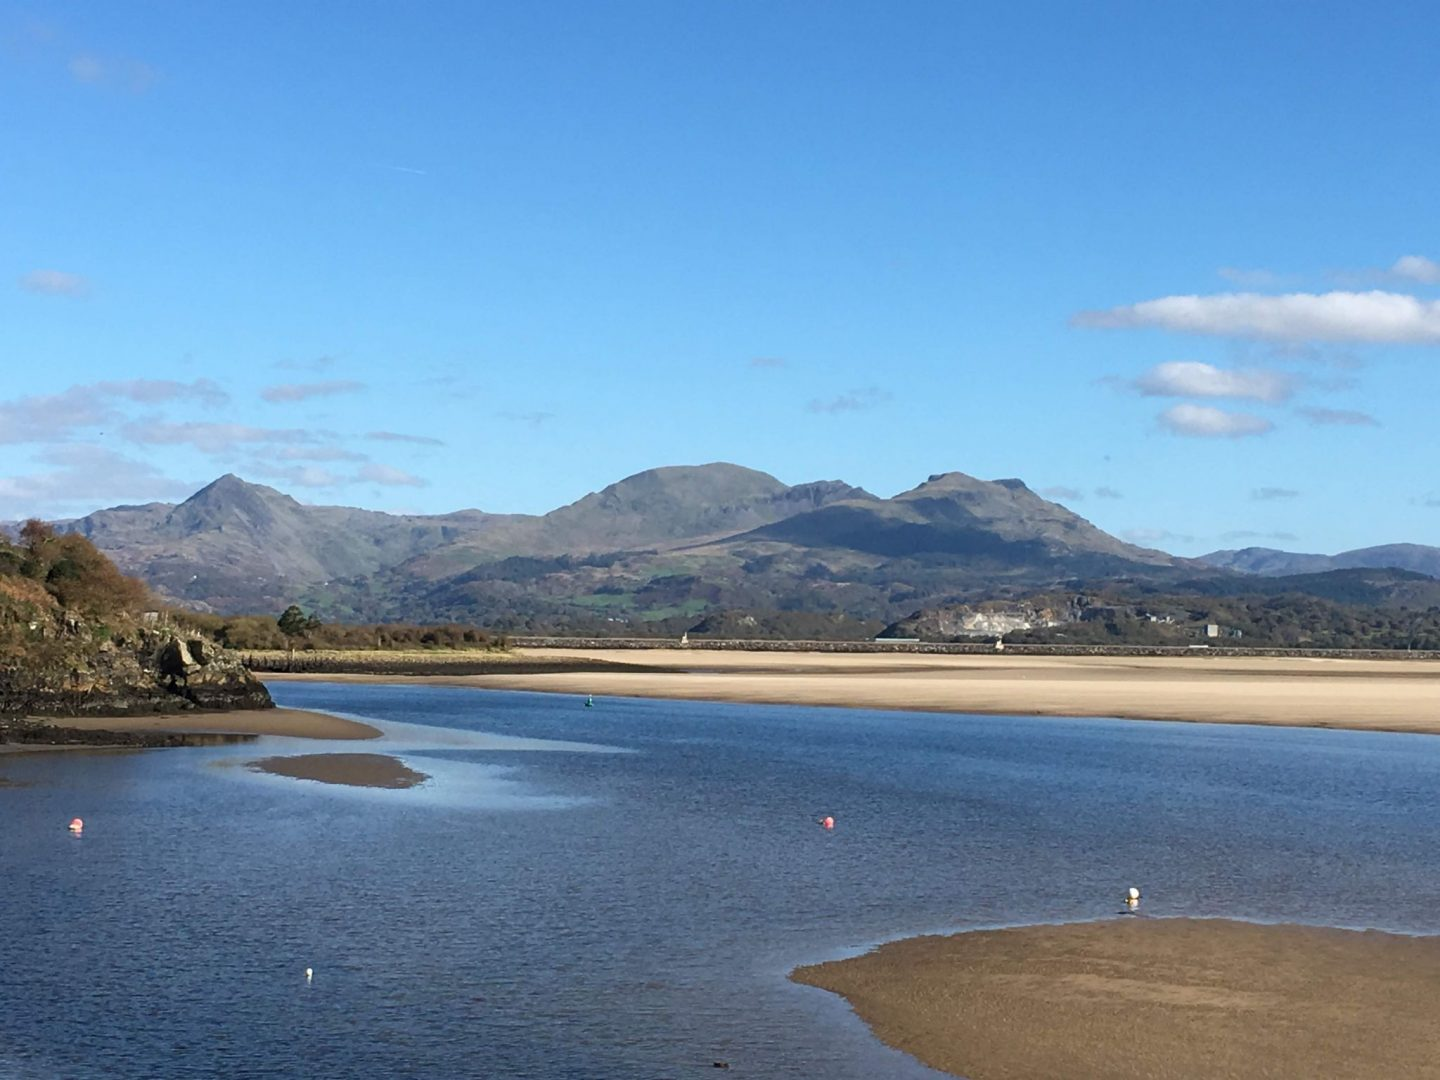 Beautiful views of the estuary and mountains near Porthmadog